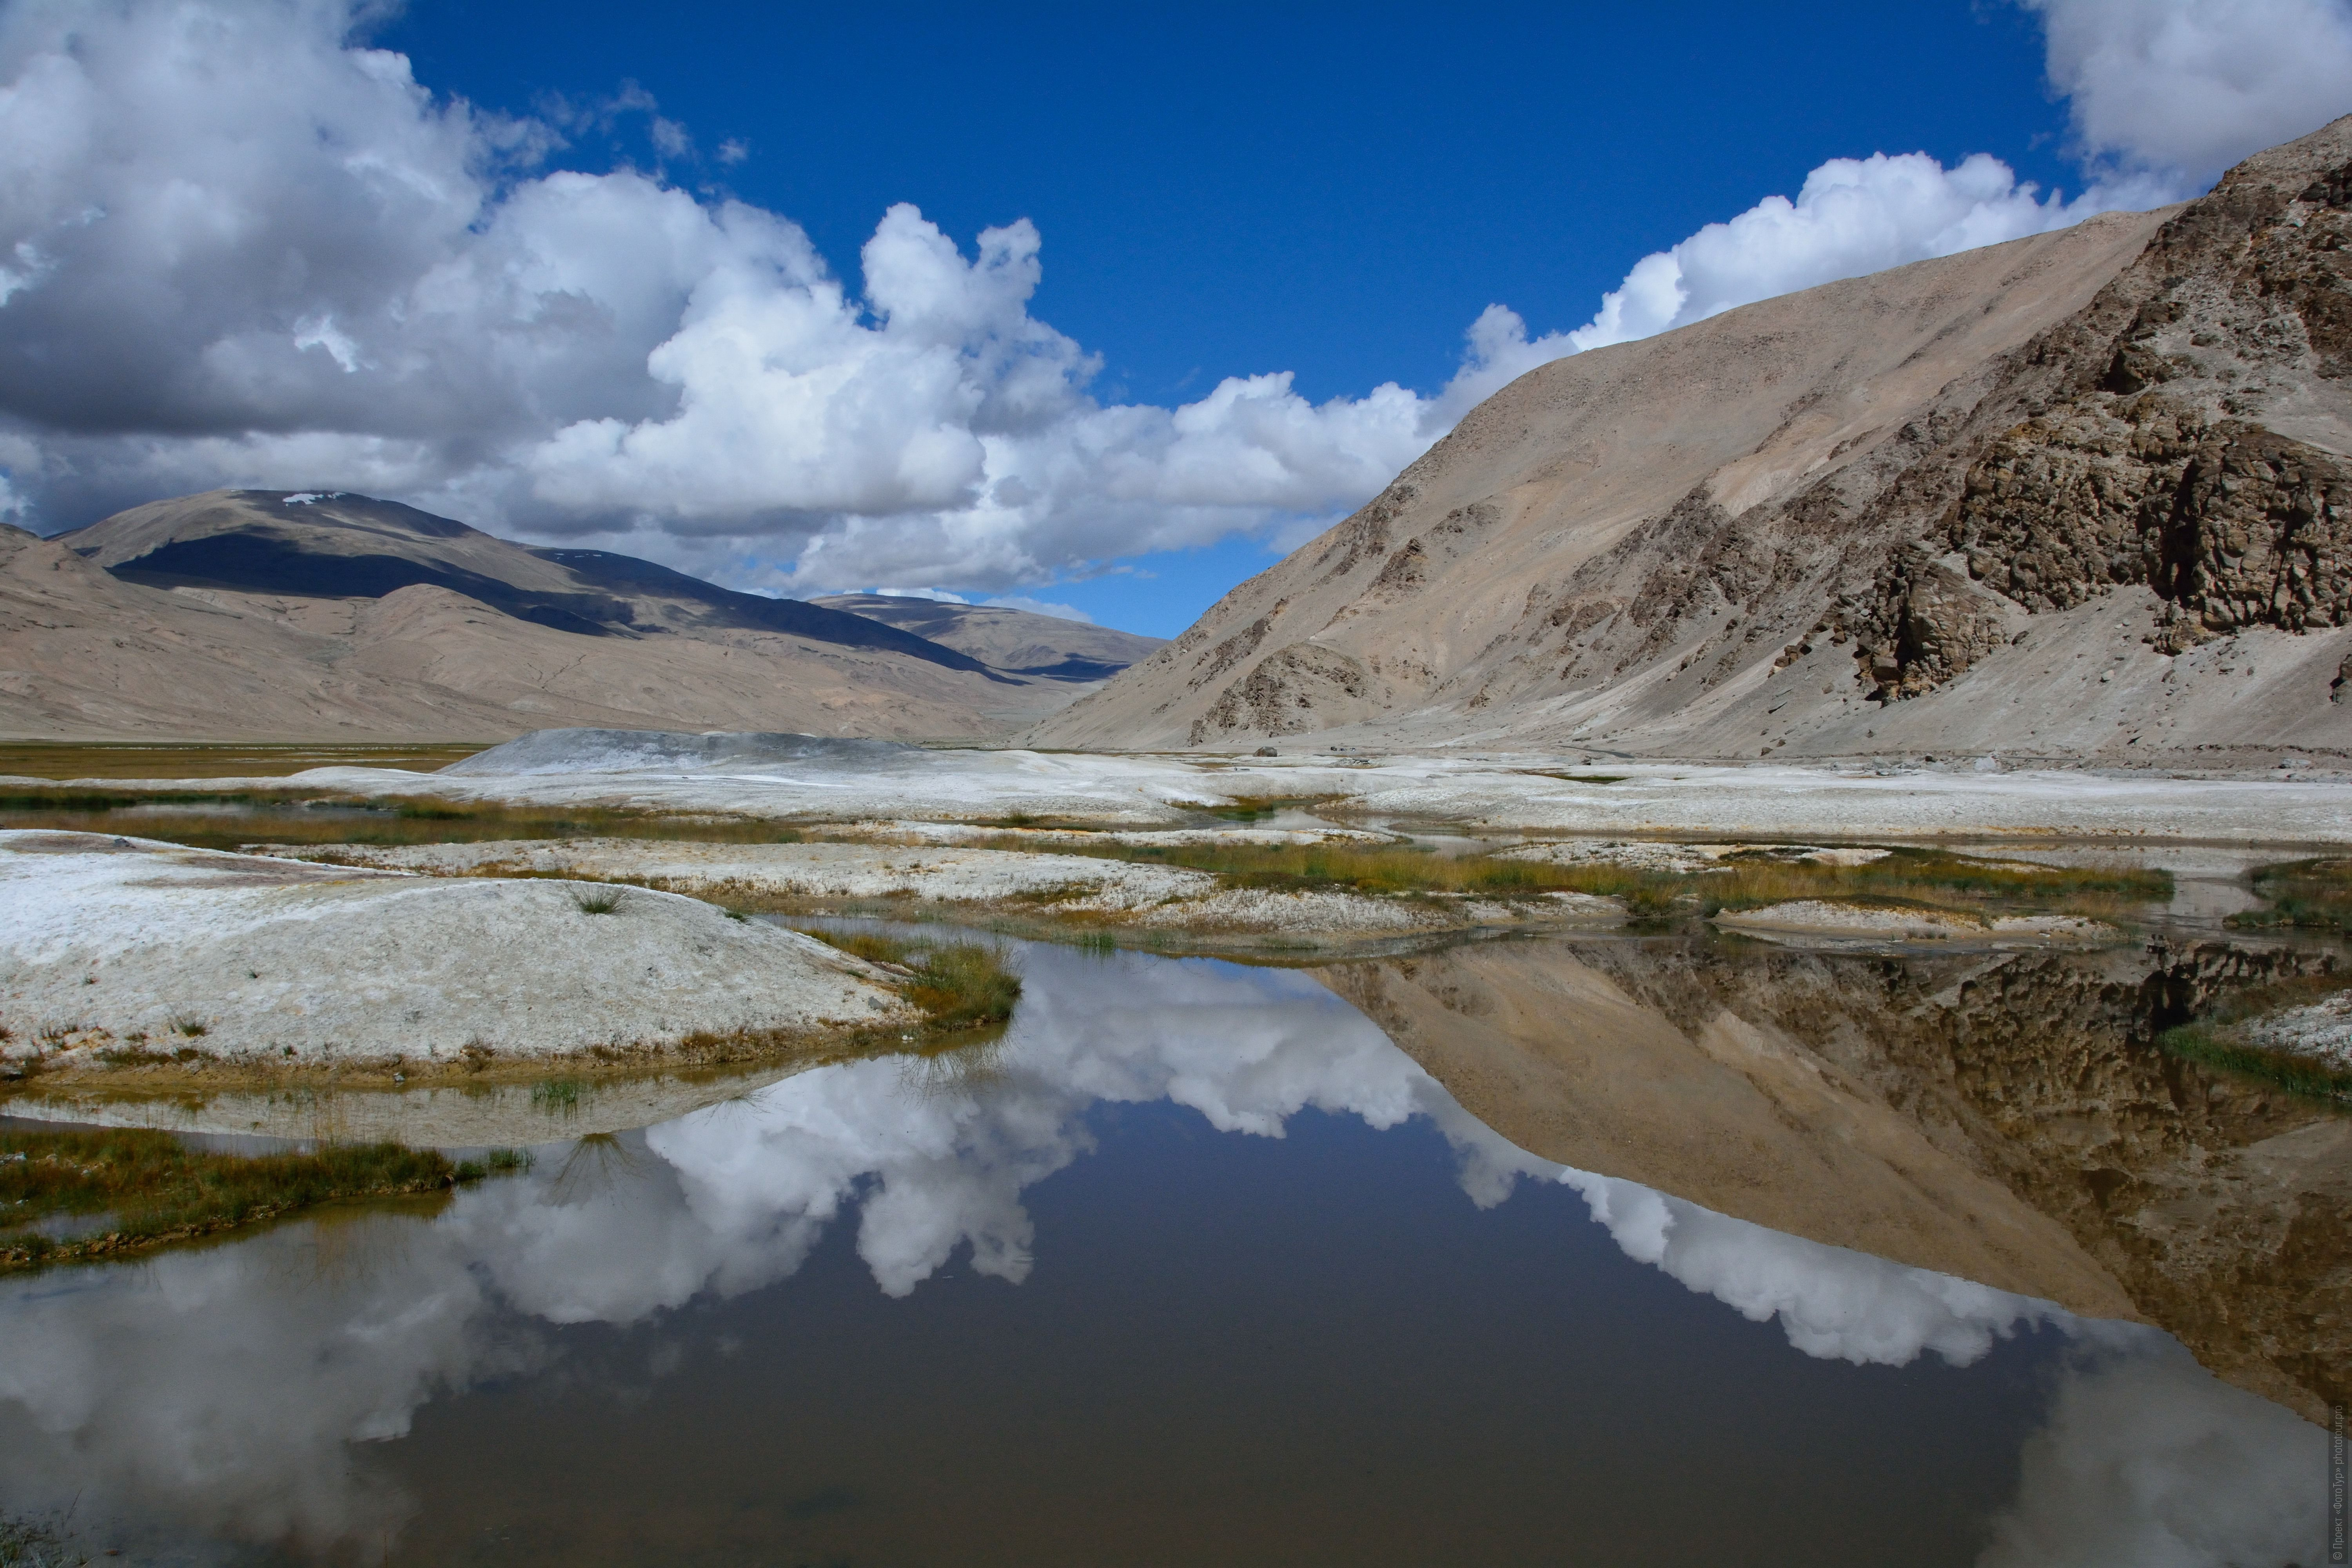 Valley of Alpine Geysers, Ladakh. Photo tour / tour Tibet of Lake-1: Pangong, Tso Moriri, Tso Kar, Tso Chiagar, Dance of Tsam on Lake Pangong, 19.06. - 28.06.2021.